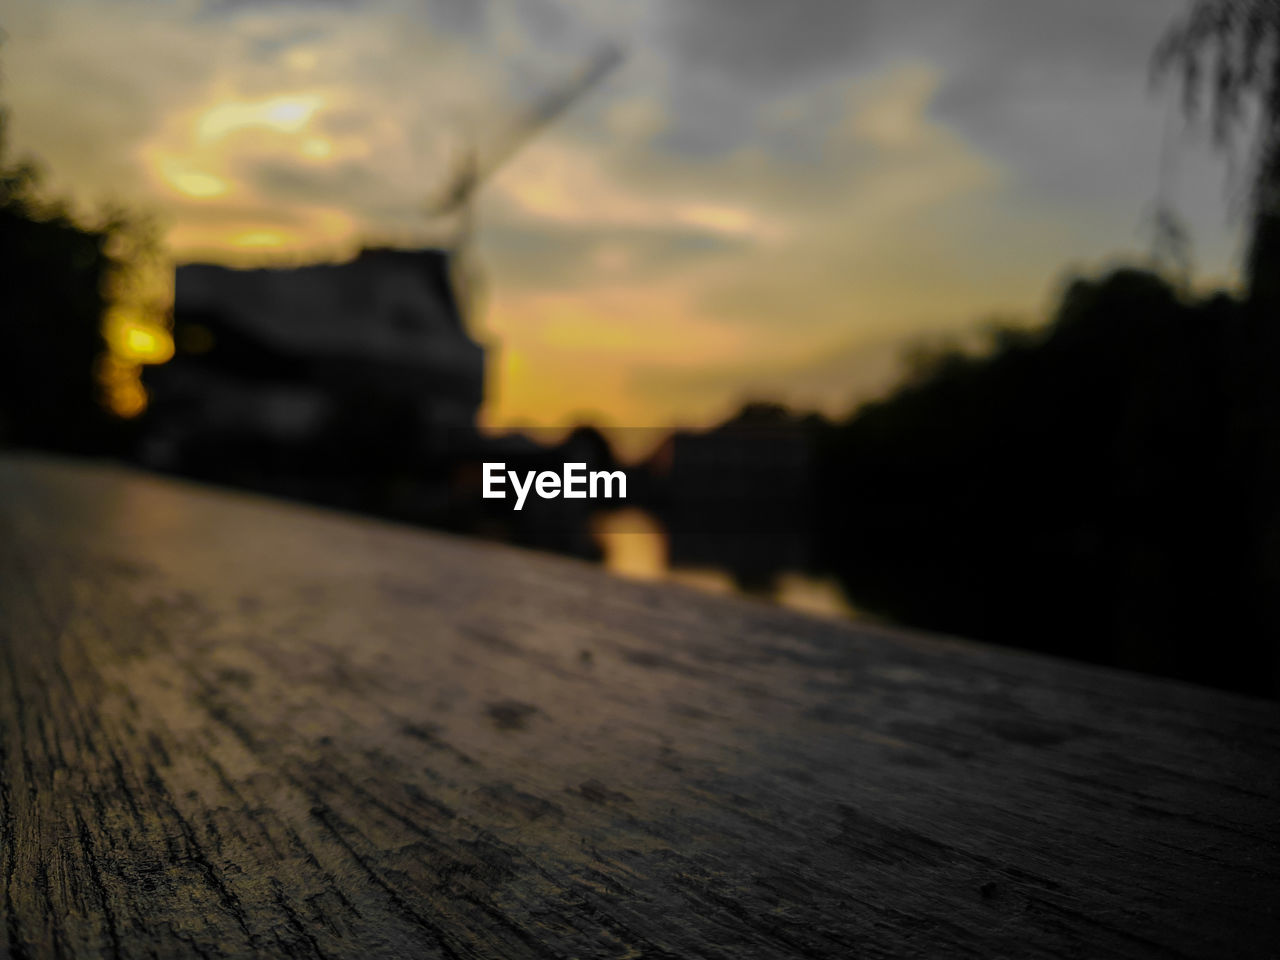 sunset, sky, wood - material, cloud - sky, orange color, nature, focus on foreground, close-up, outdoors, no people, selective focus, built structure, water, surface level, architecture, city, beauty in nature, textured, tranquility, sunlight